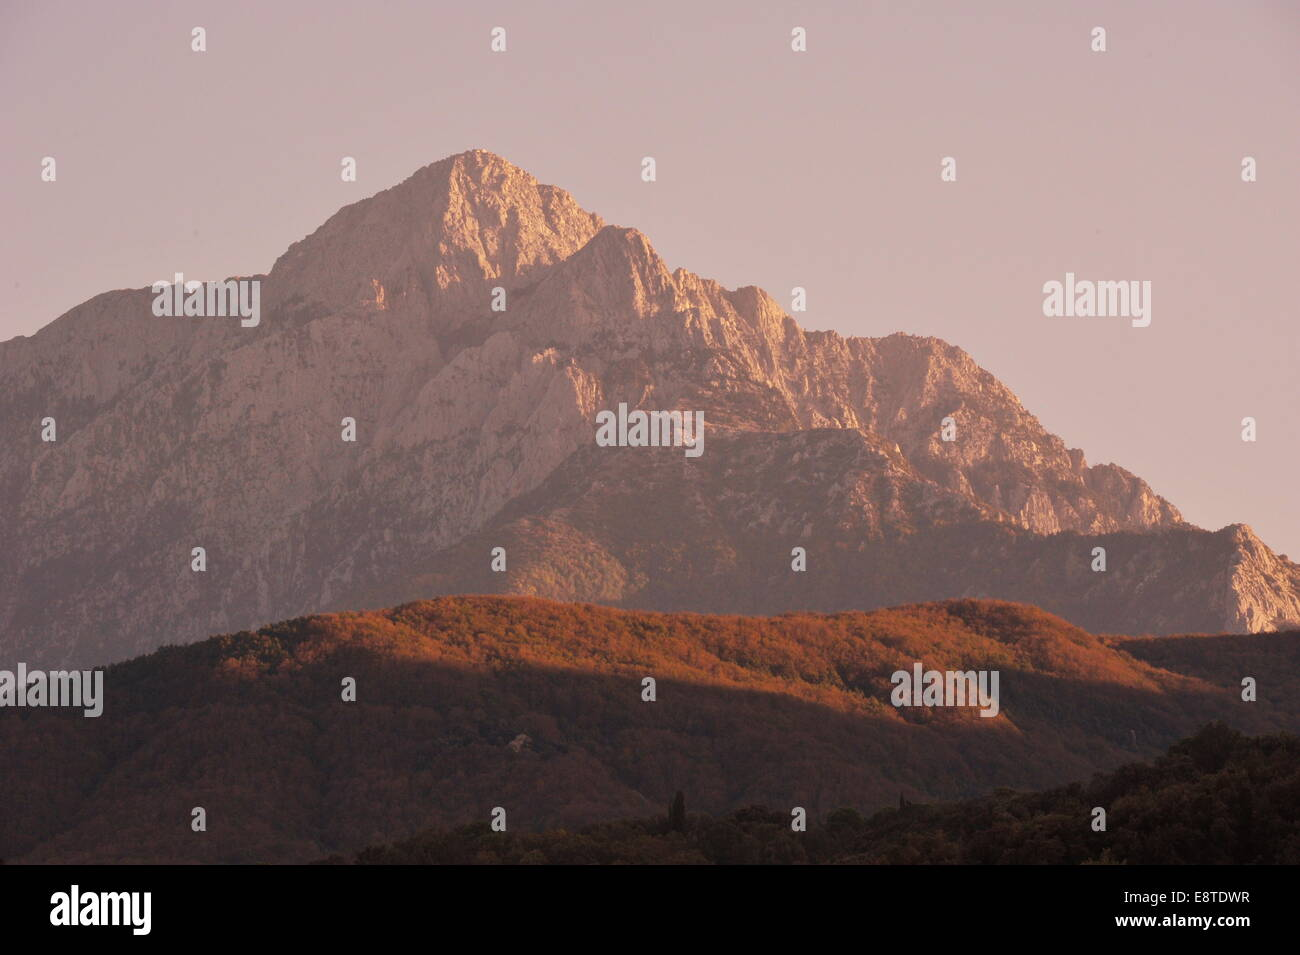 Mount Athos (2.300 Mtr.), Chalkidiki, Griechenland. - Stock Image